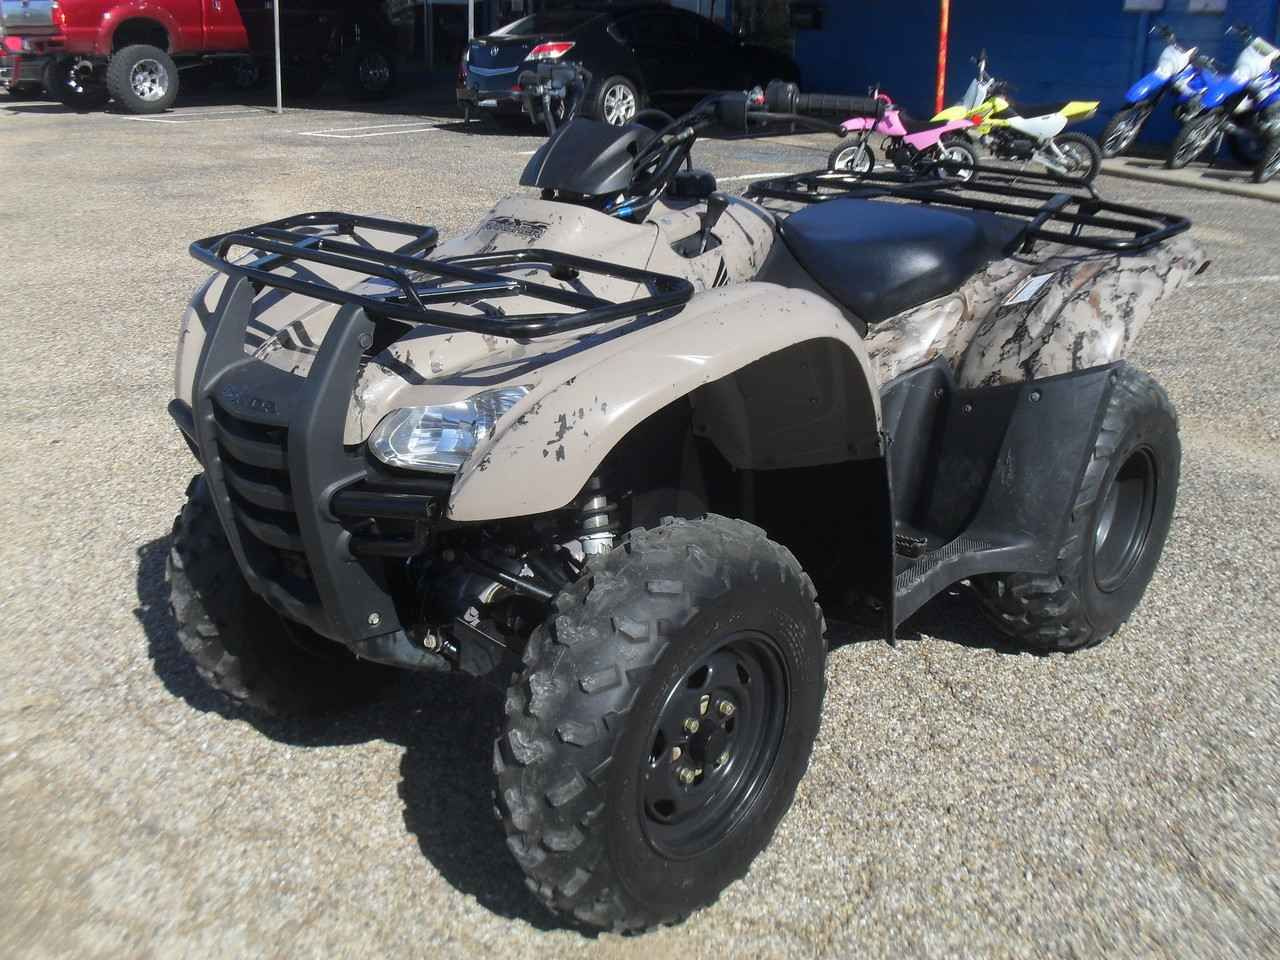 Elegant Used 2013 Honda FOURTRAX RANCHER 420 4X4 ATVs For Sale In Texas. 2013 Honda  Rancher